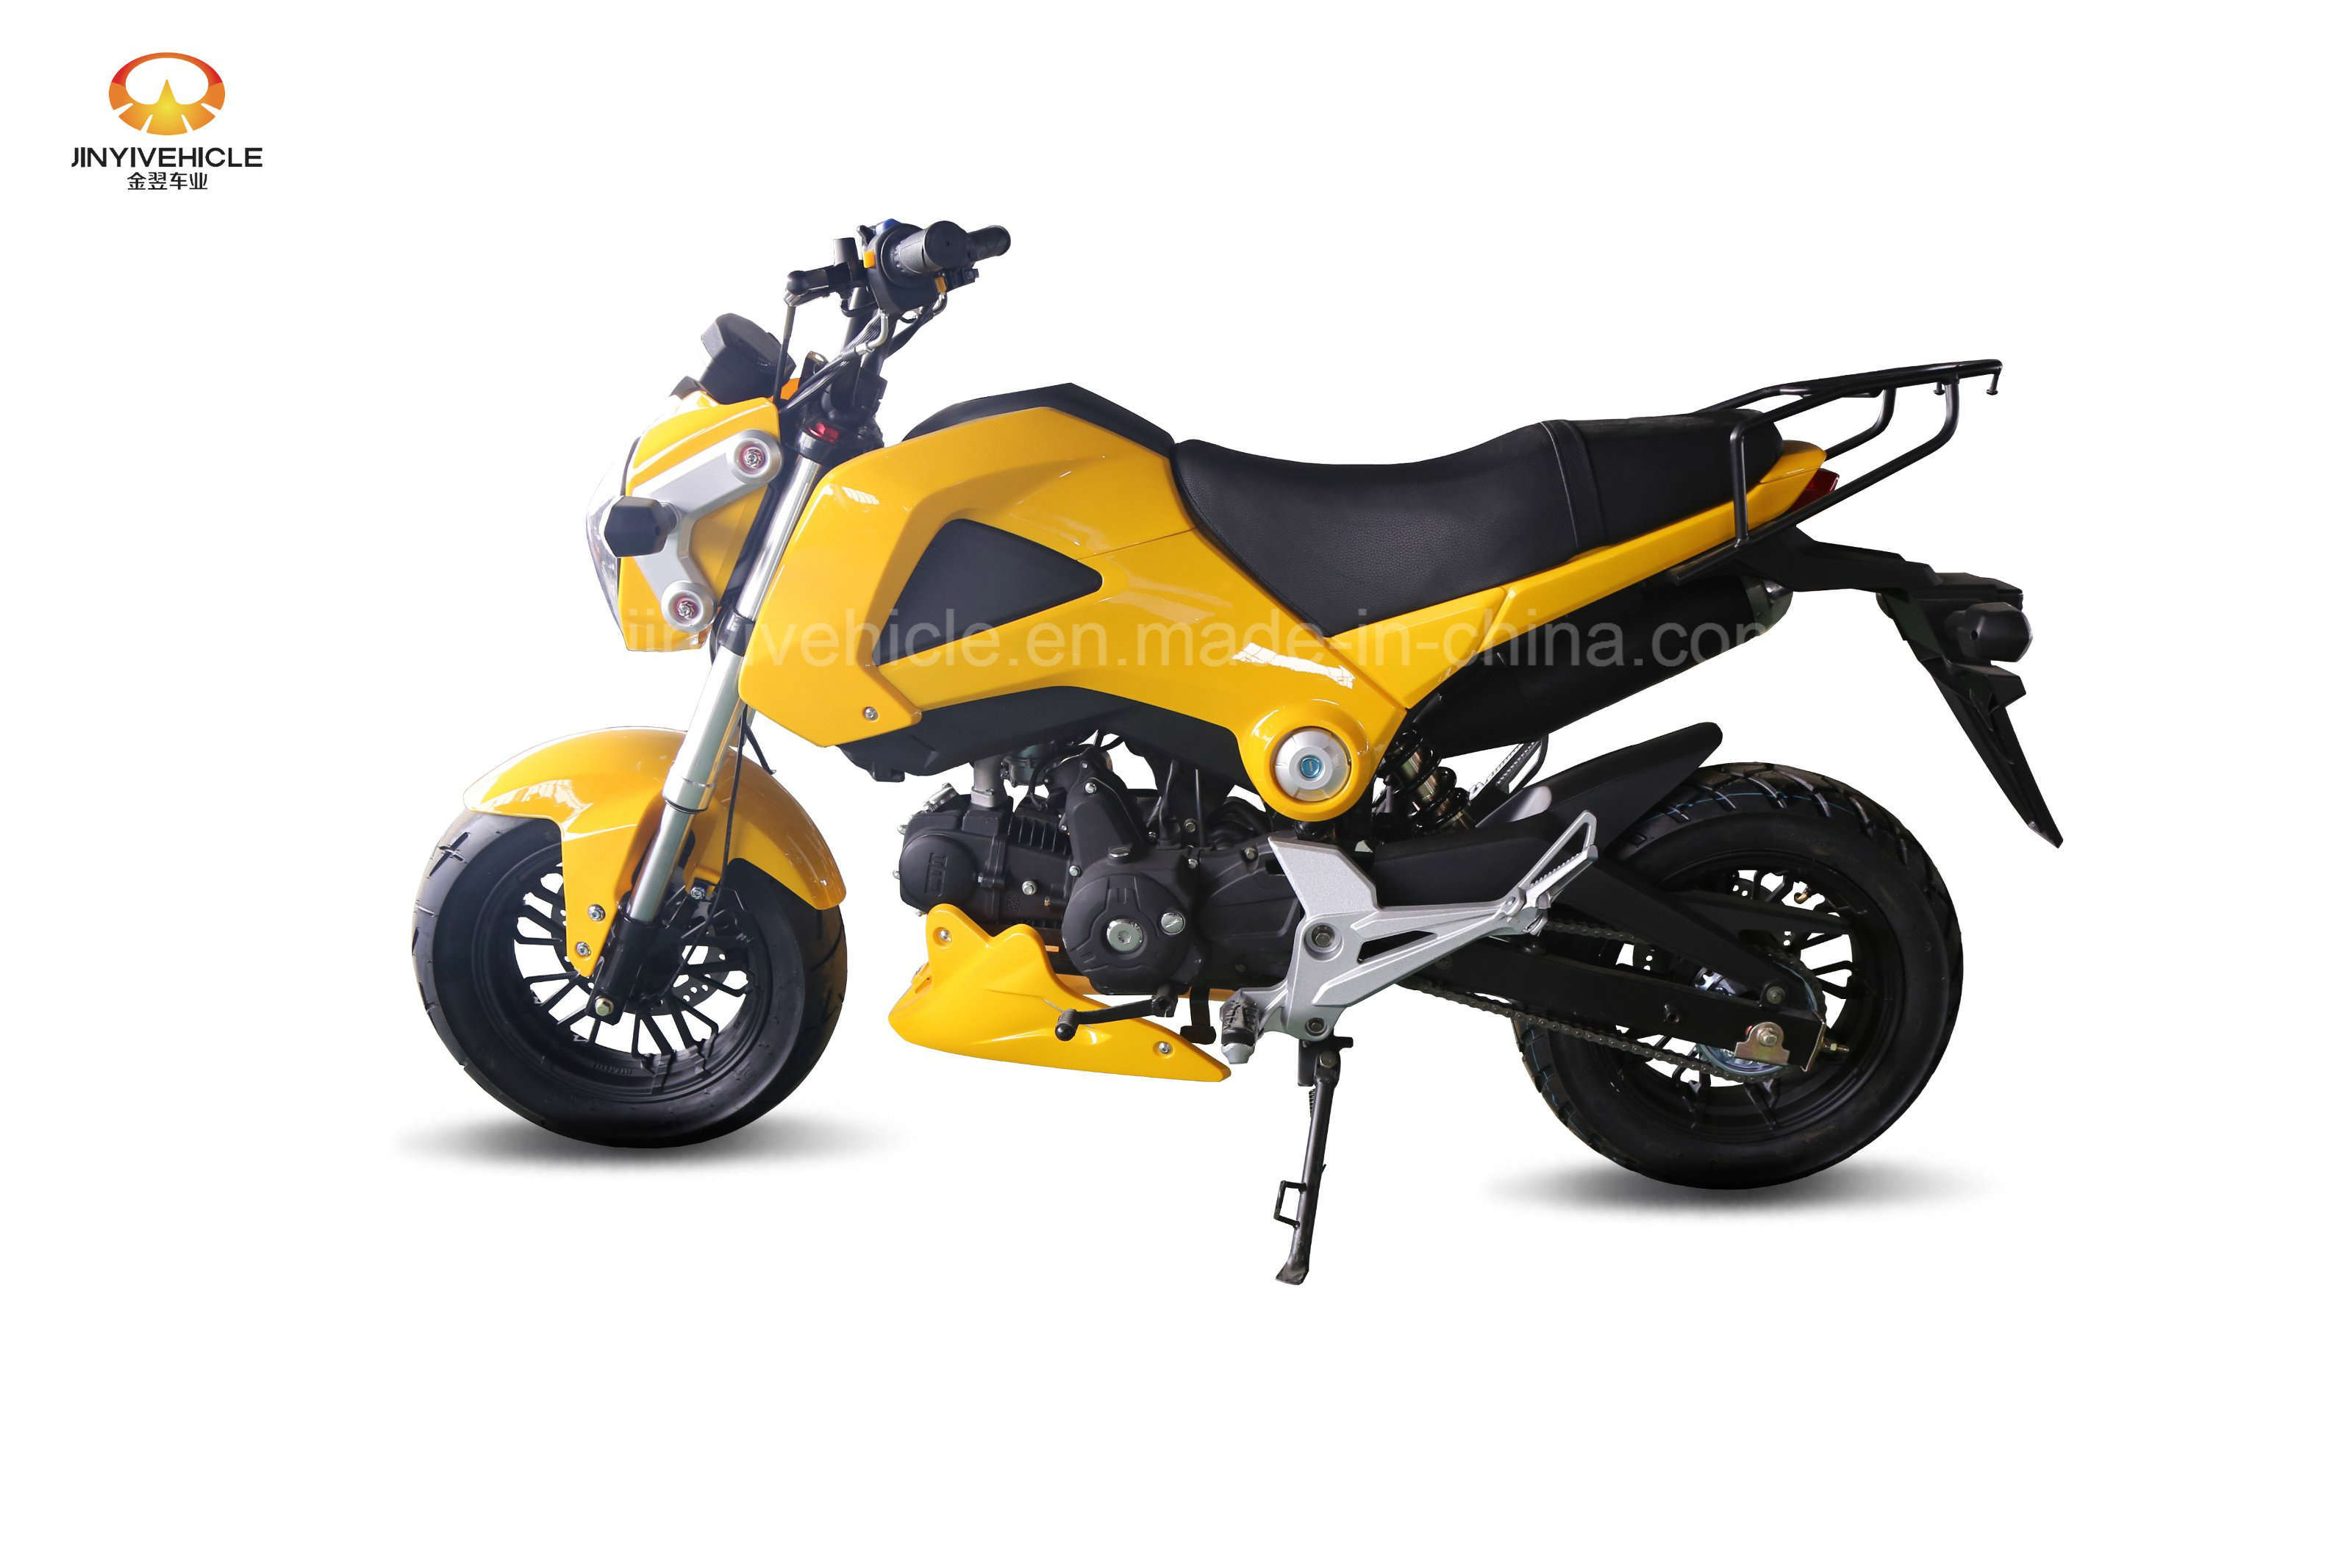 150cc Raing Bike Jy-M3 Sport Motorcycle